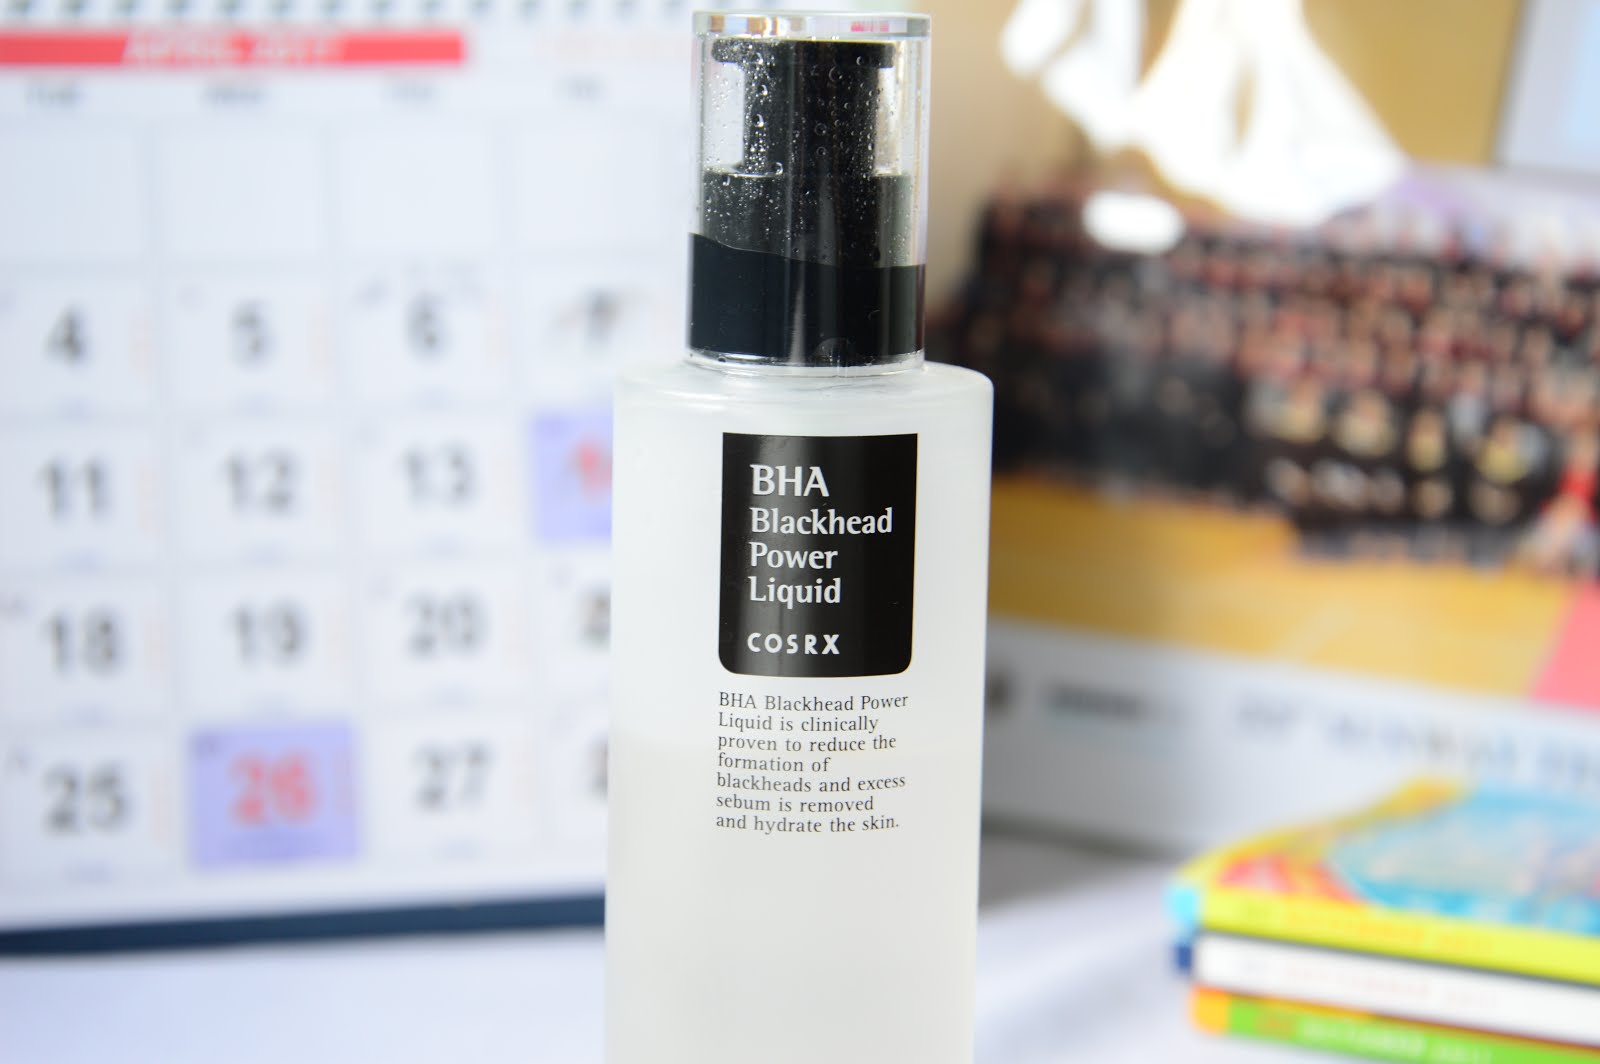 COSRX BHA Blackhead Power Liquid review